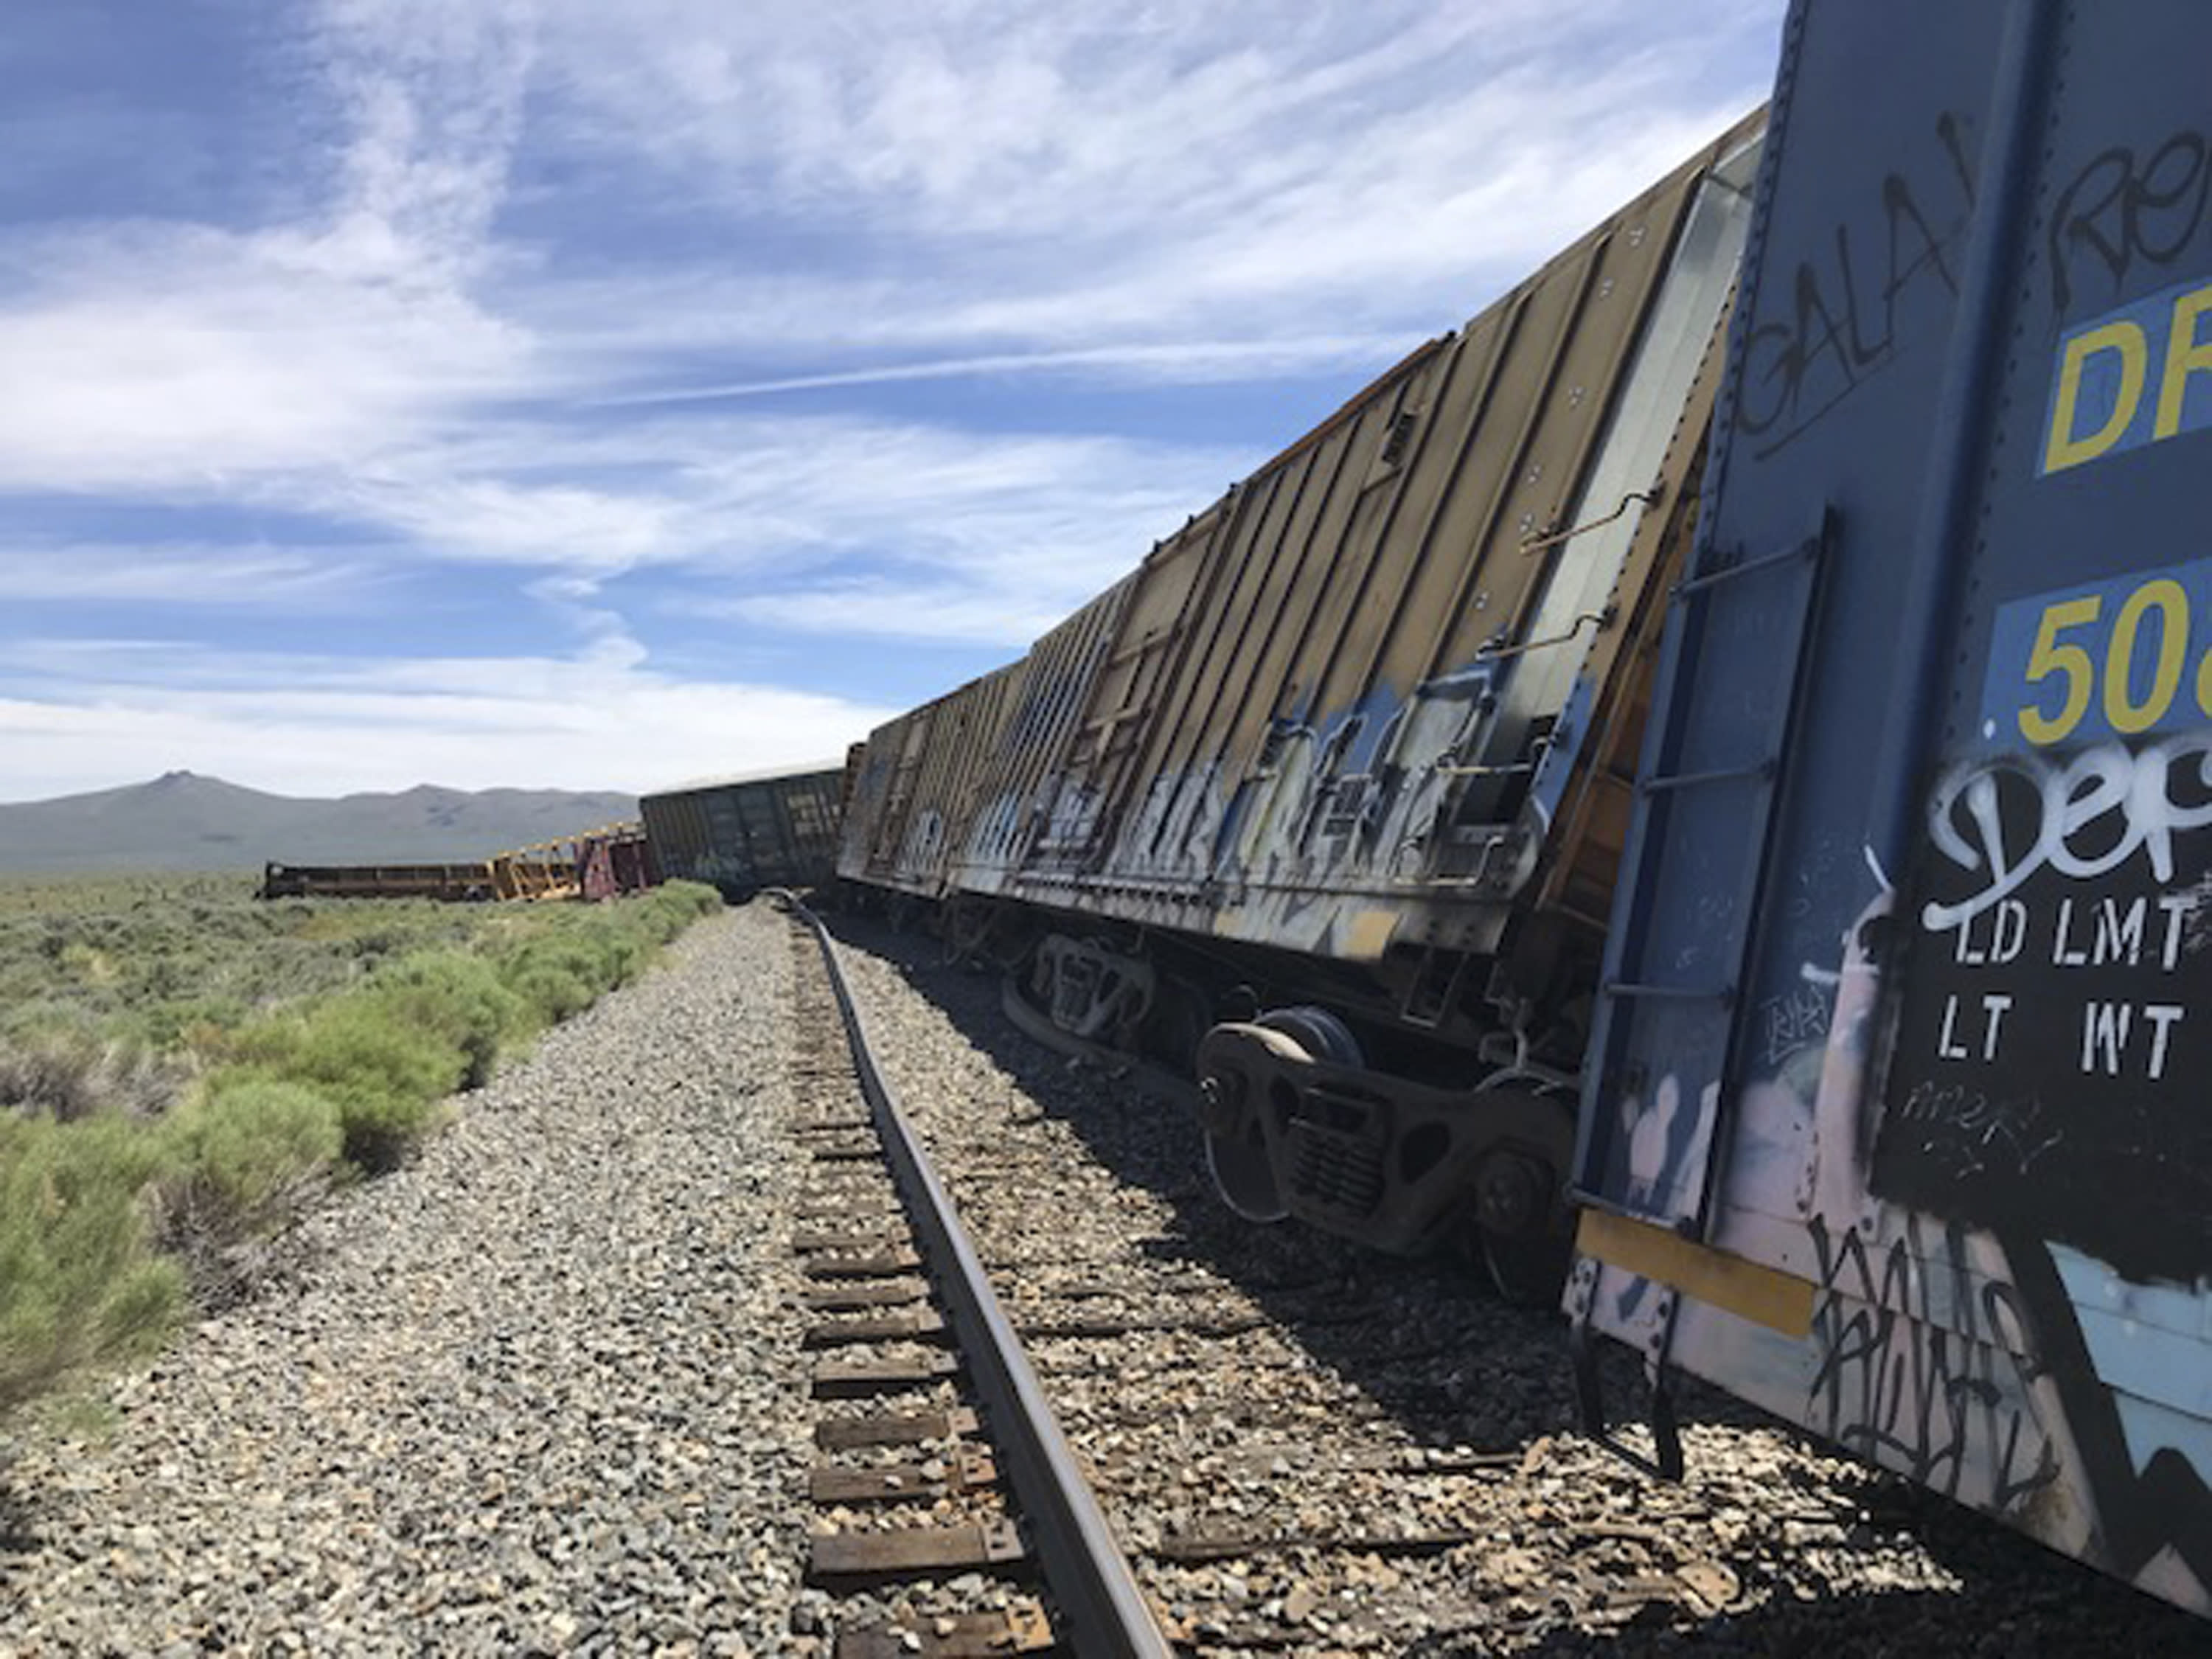 This photo provided by the Nevada Department of Public Safety shows a derailed train Wednesday, June 19, 2019, near Wells, Nev. A train carrying military munitions derailed in the high desert of northeast Nevada, closing an interstate for about an hour before emergency crews determined there was no danger. No injuries were reported. (Nevada Department of Public Safety via AP)